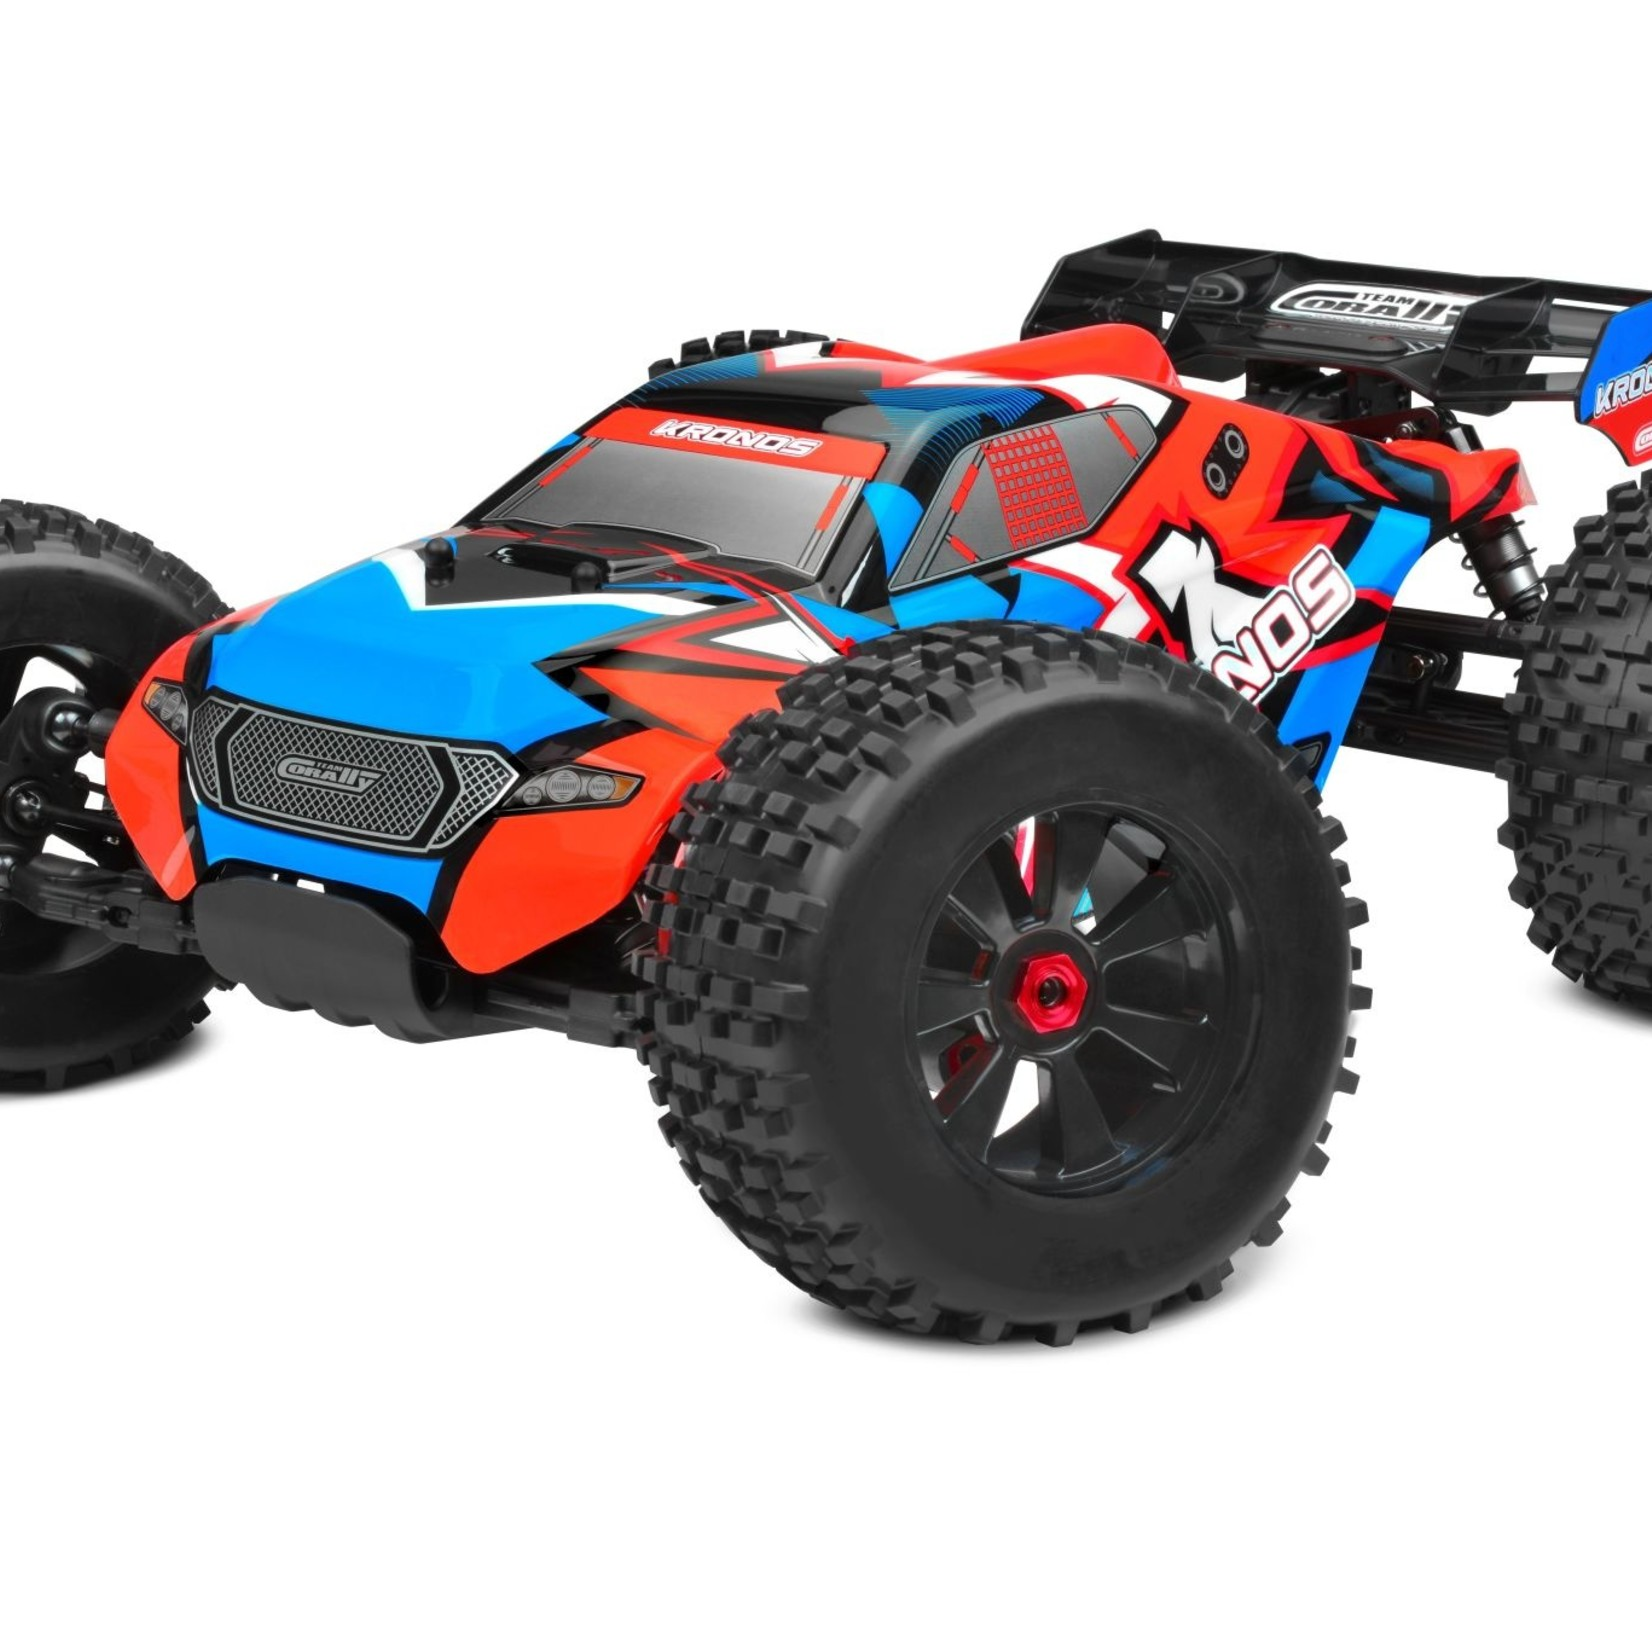 Team Corally COR00172 Team Corally 1/8 Kronos XP 4WD Monster Truck 6S Brushless RTR